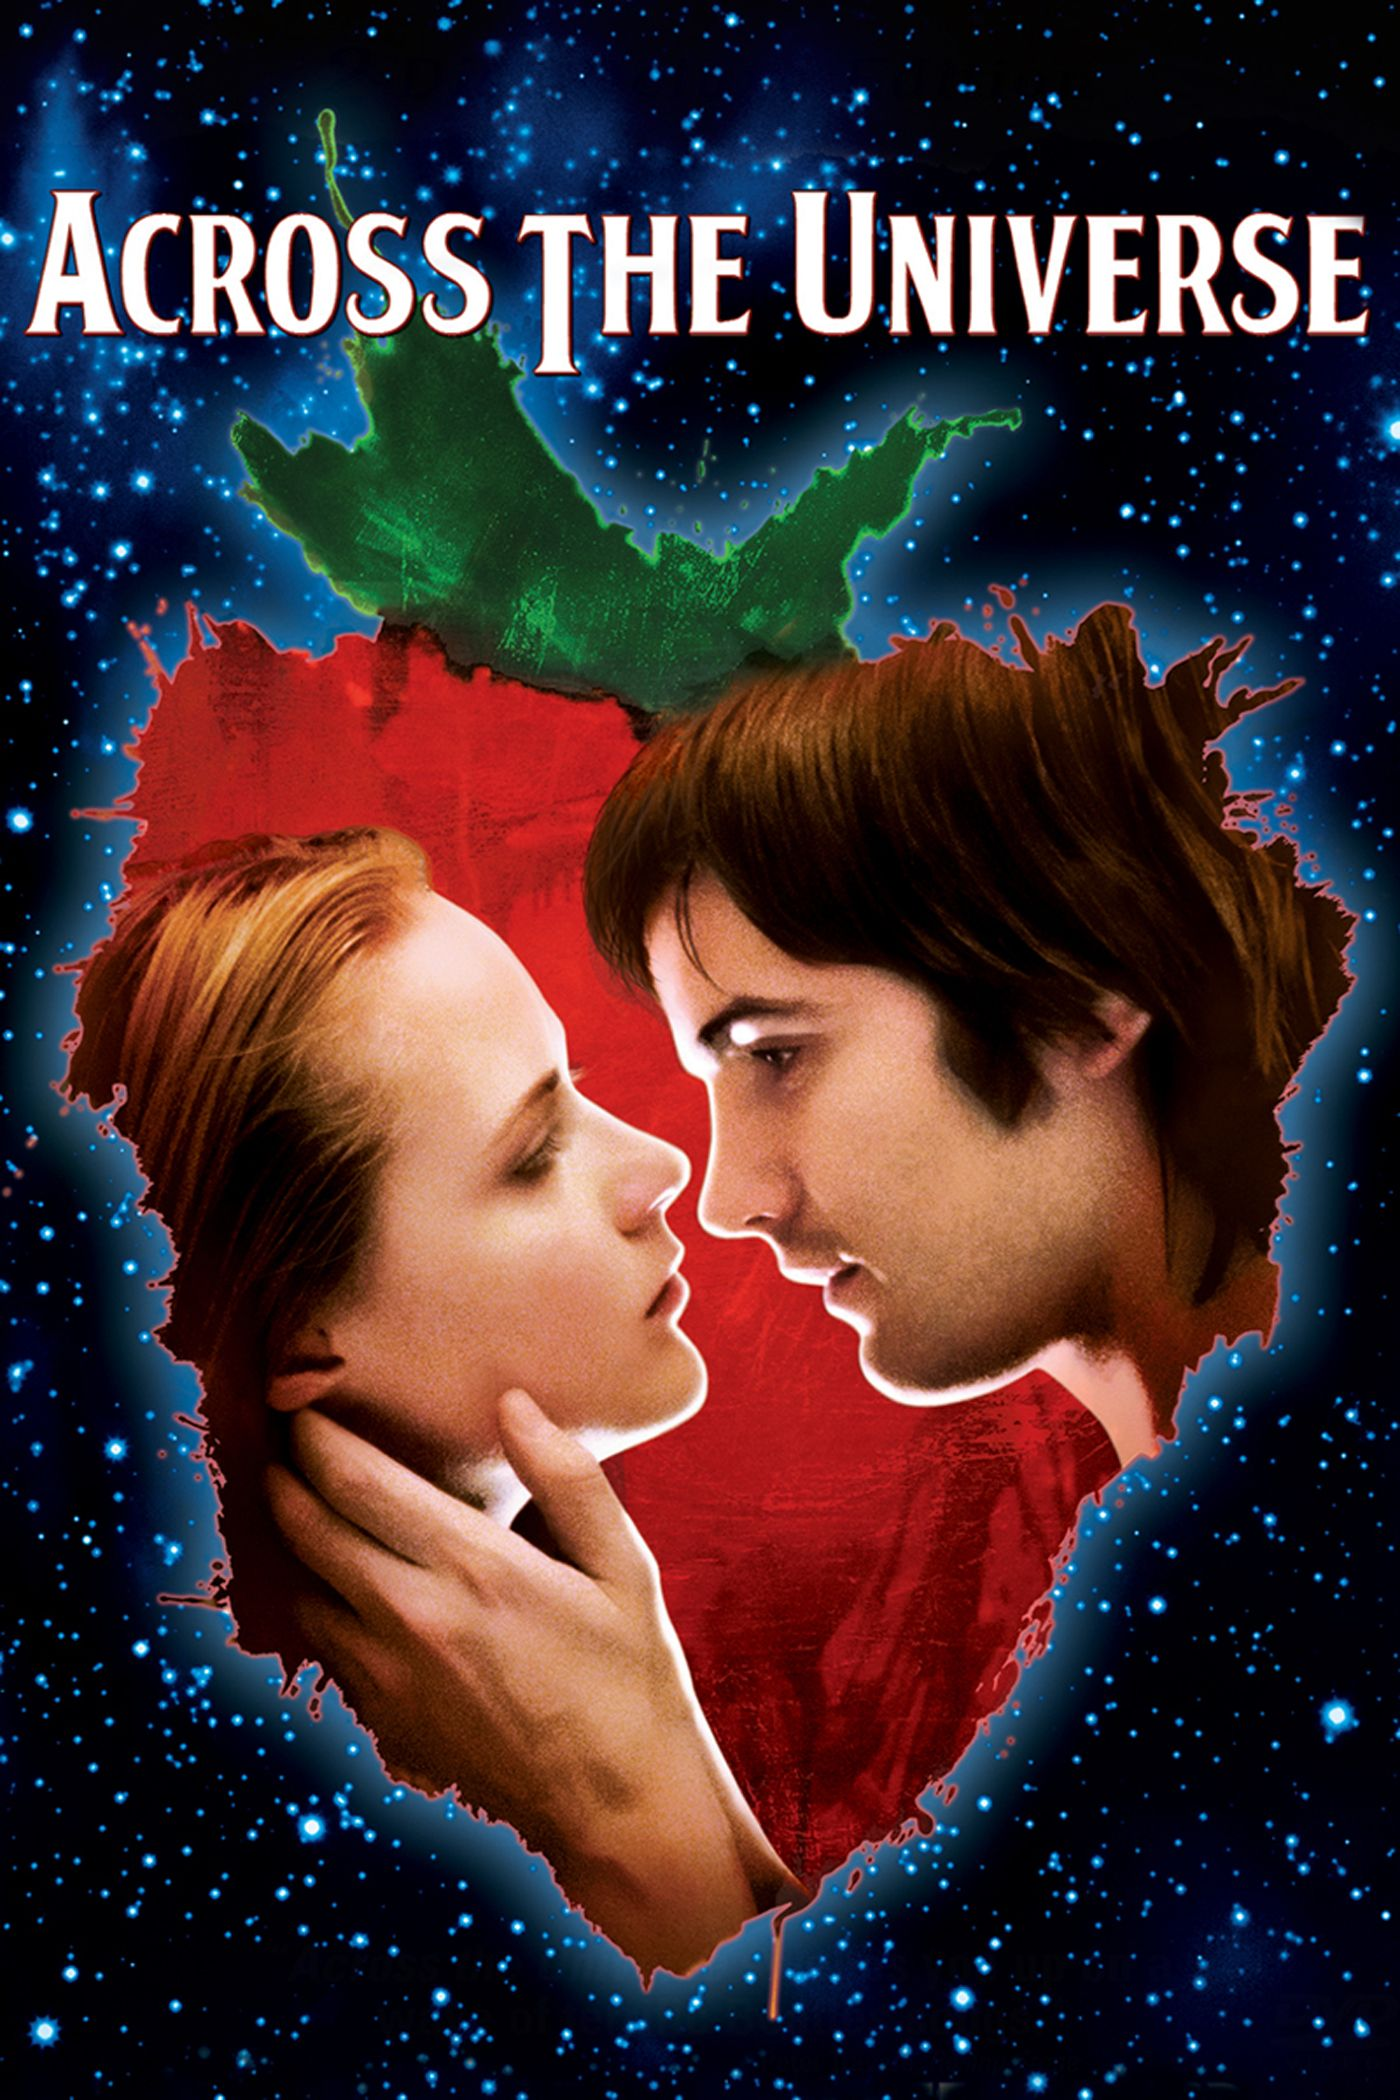 across the universe full movie free download